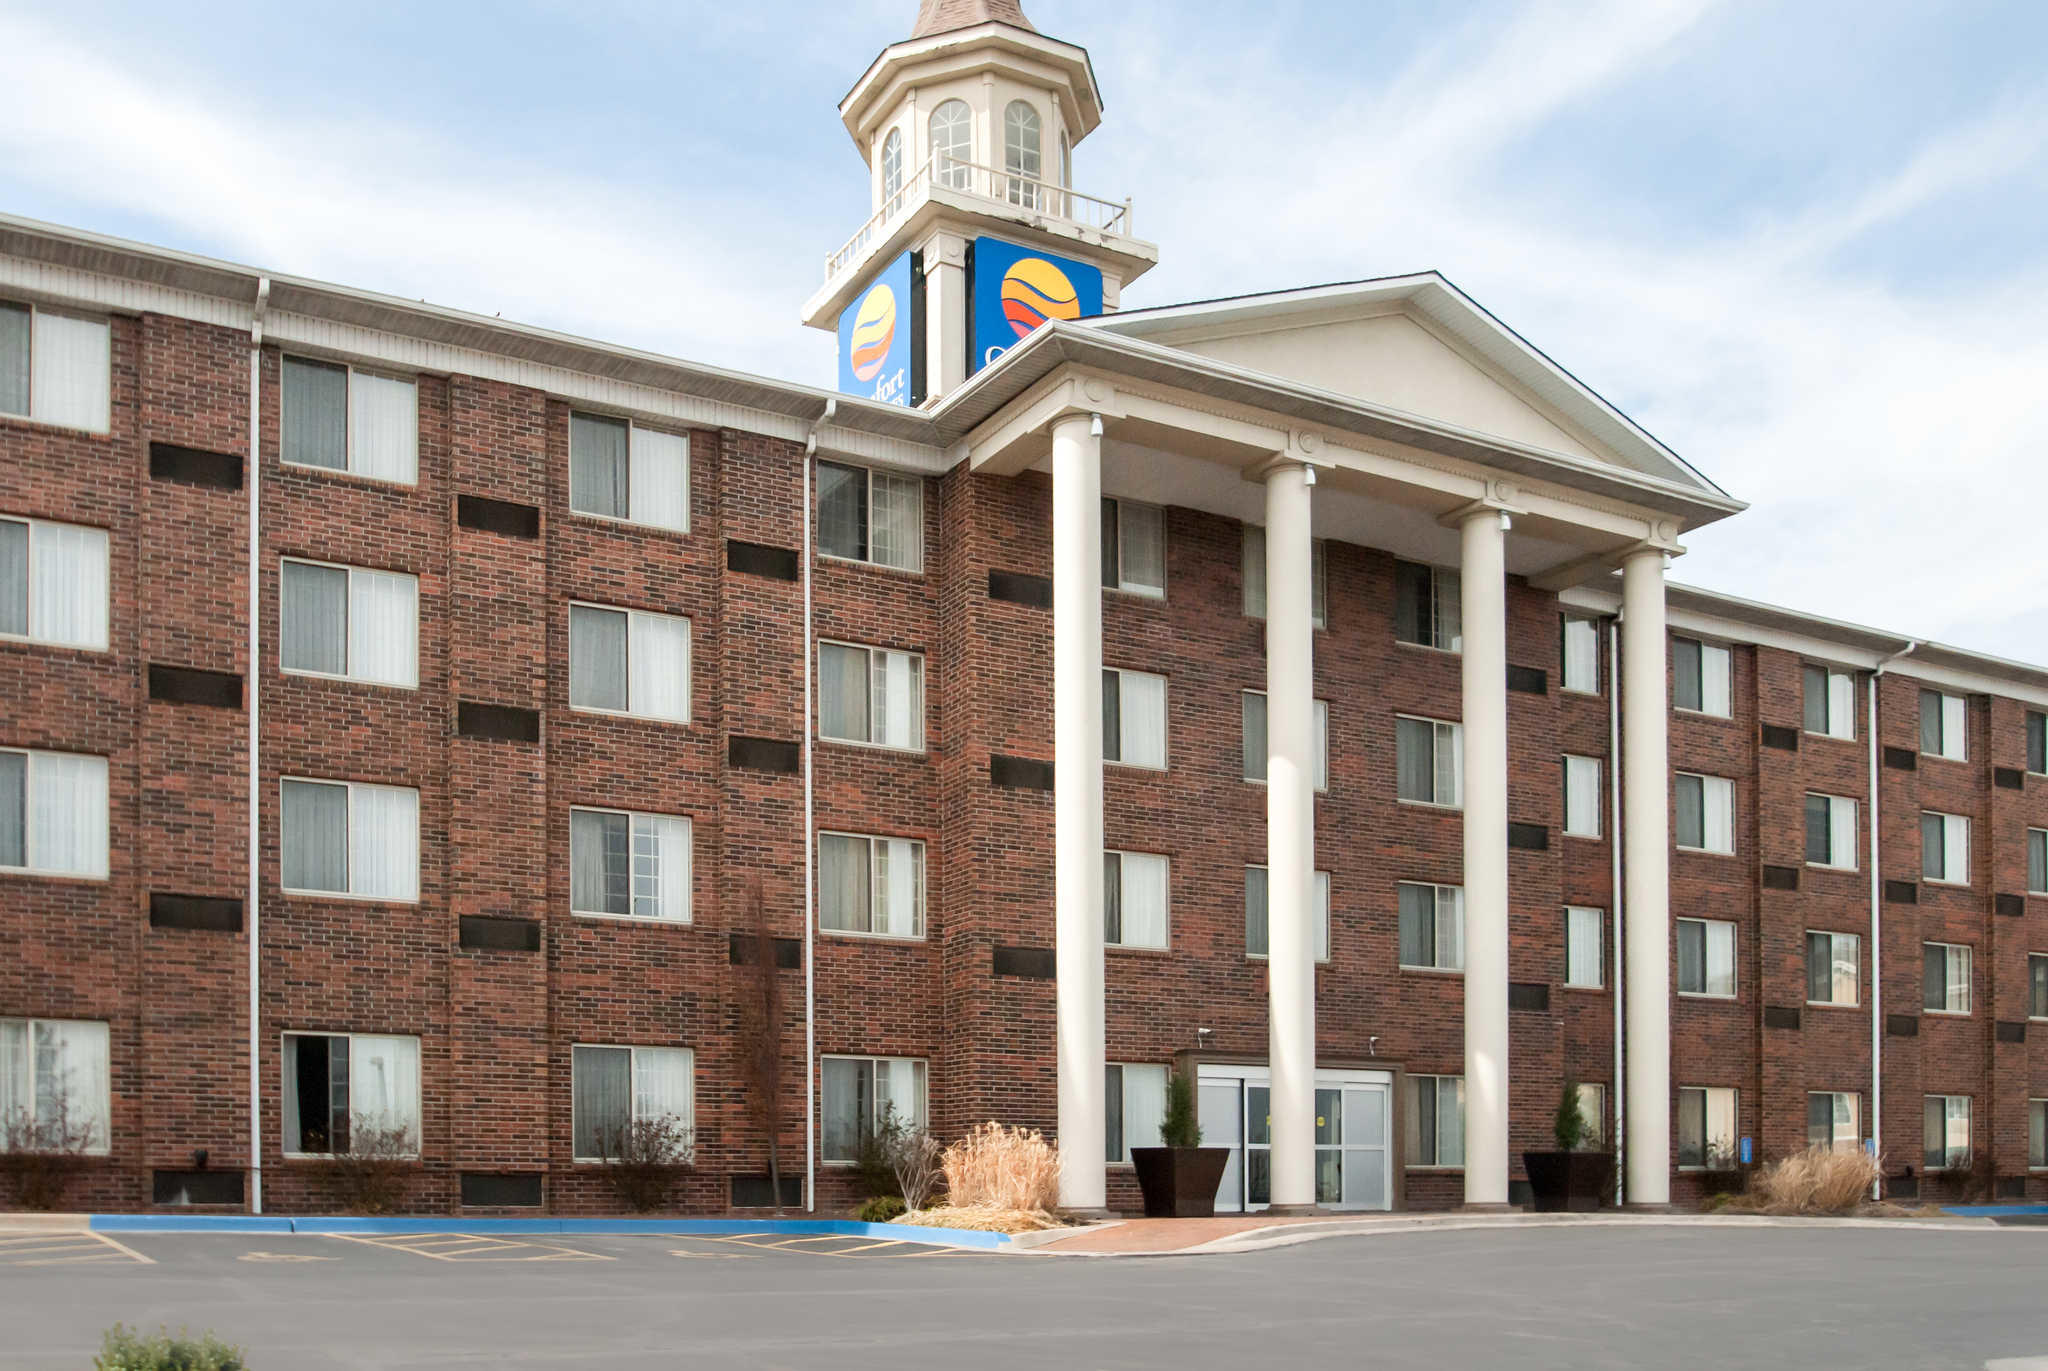 Comfort Inn Amp Suites Overland Park Kansas City South